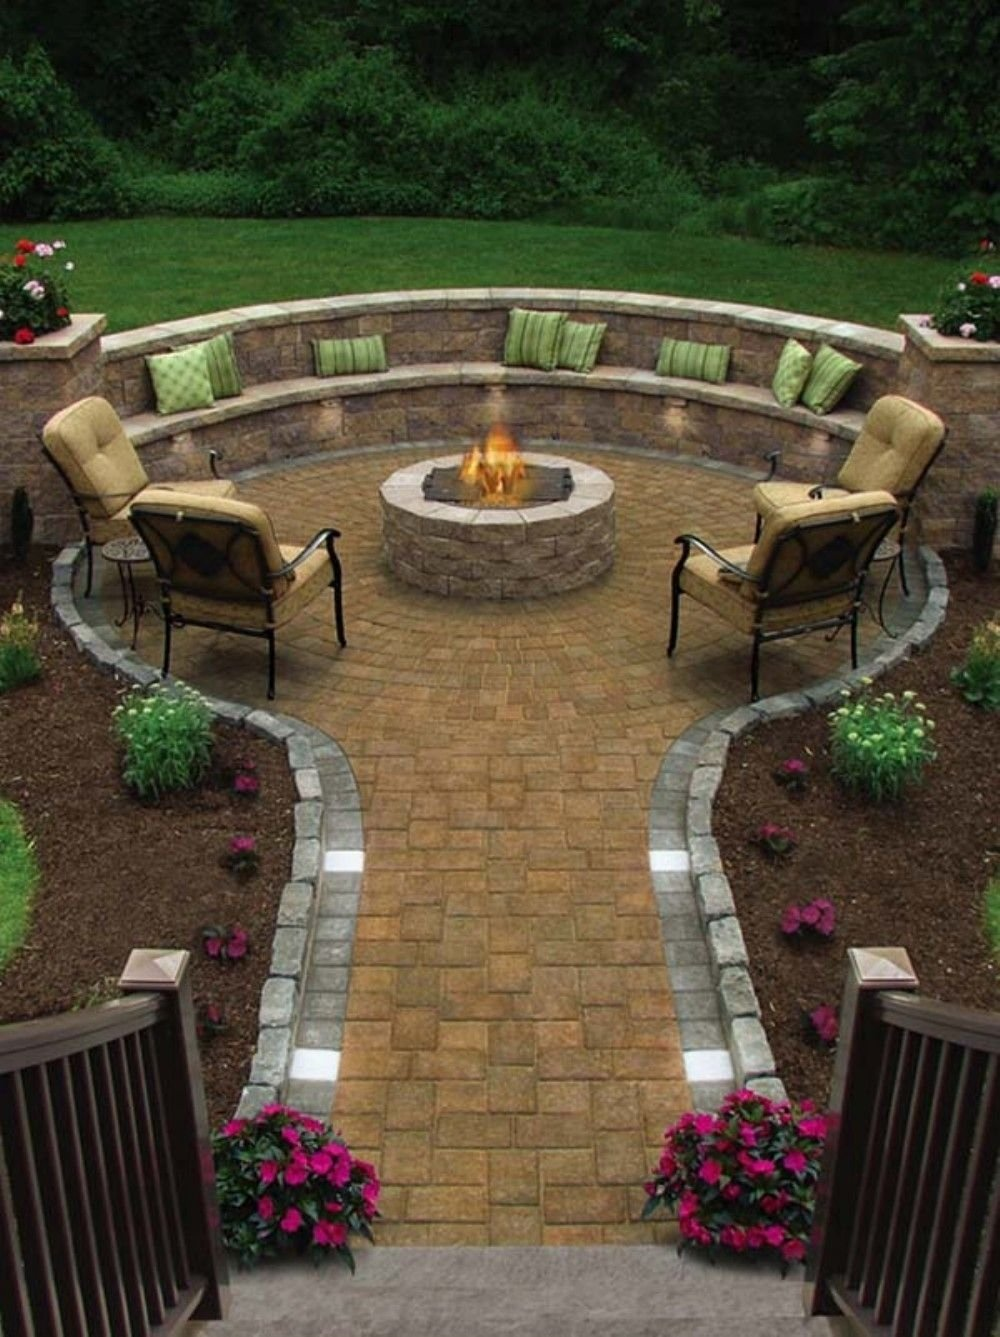 10 Ideal Backyard Ideas With Fire Pits